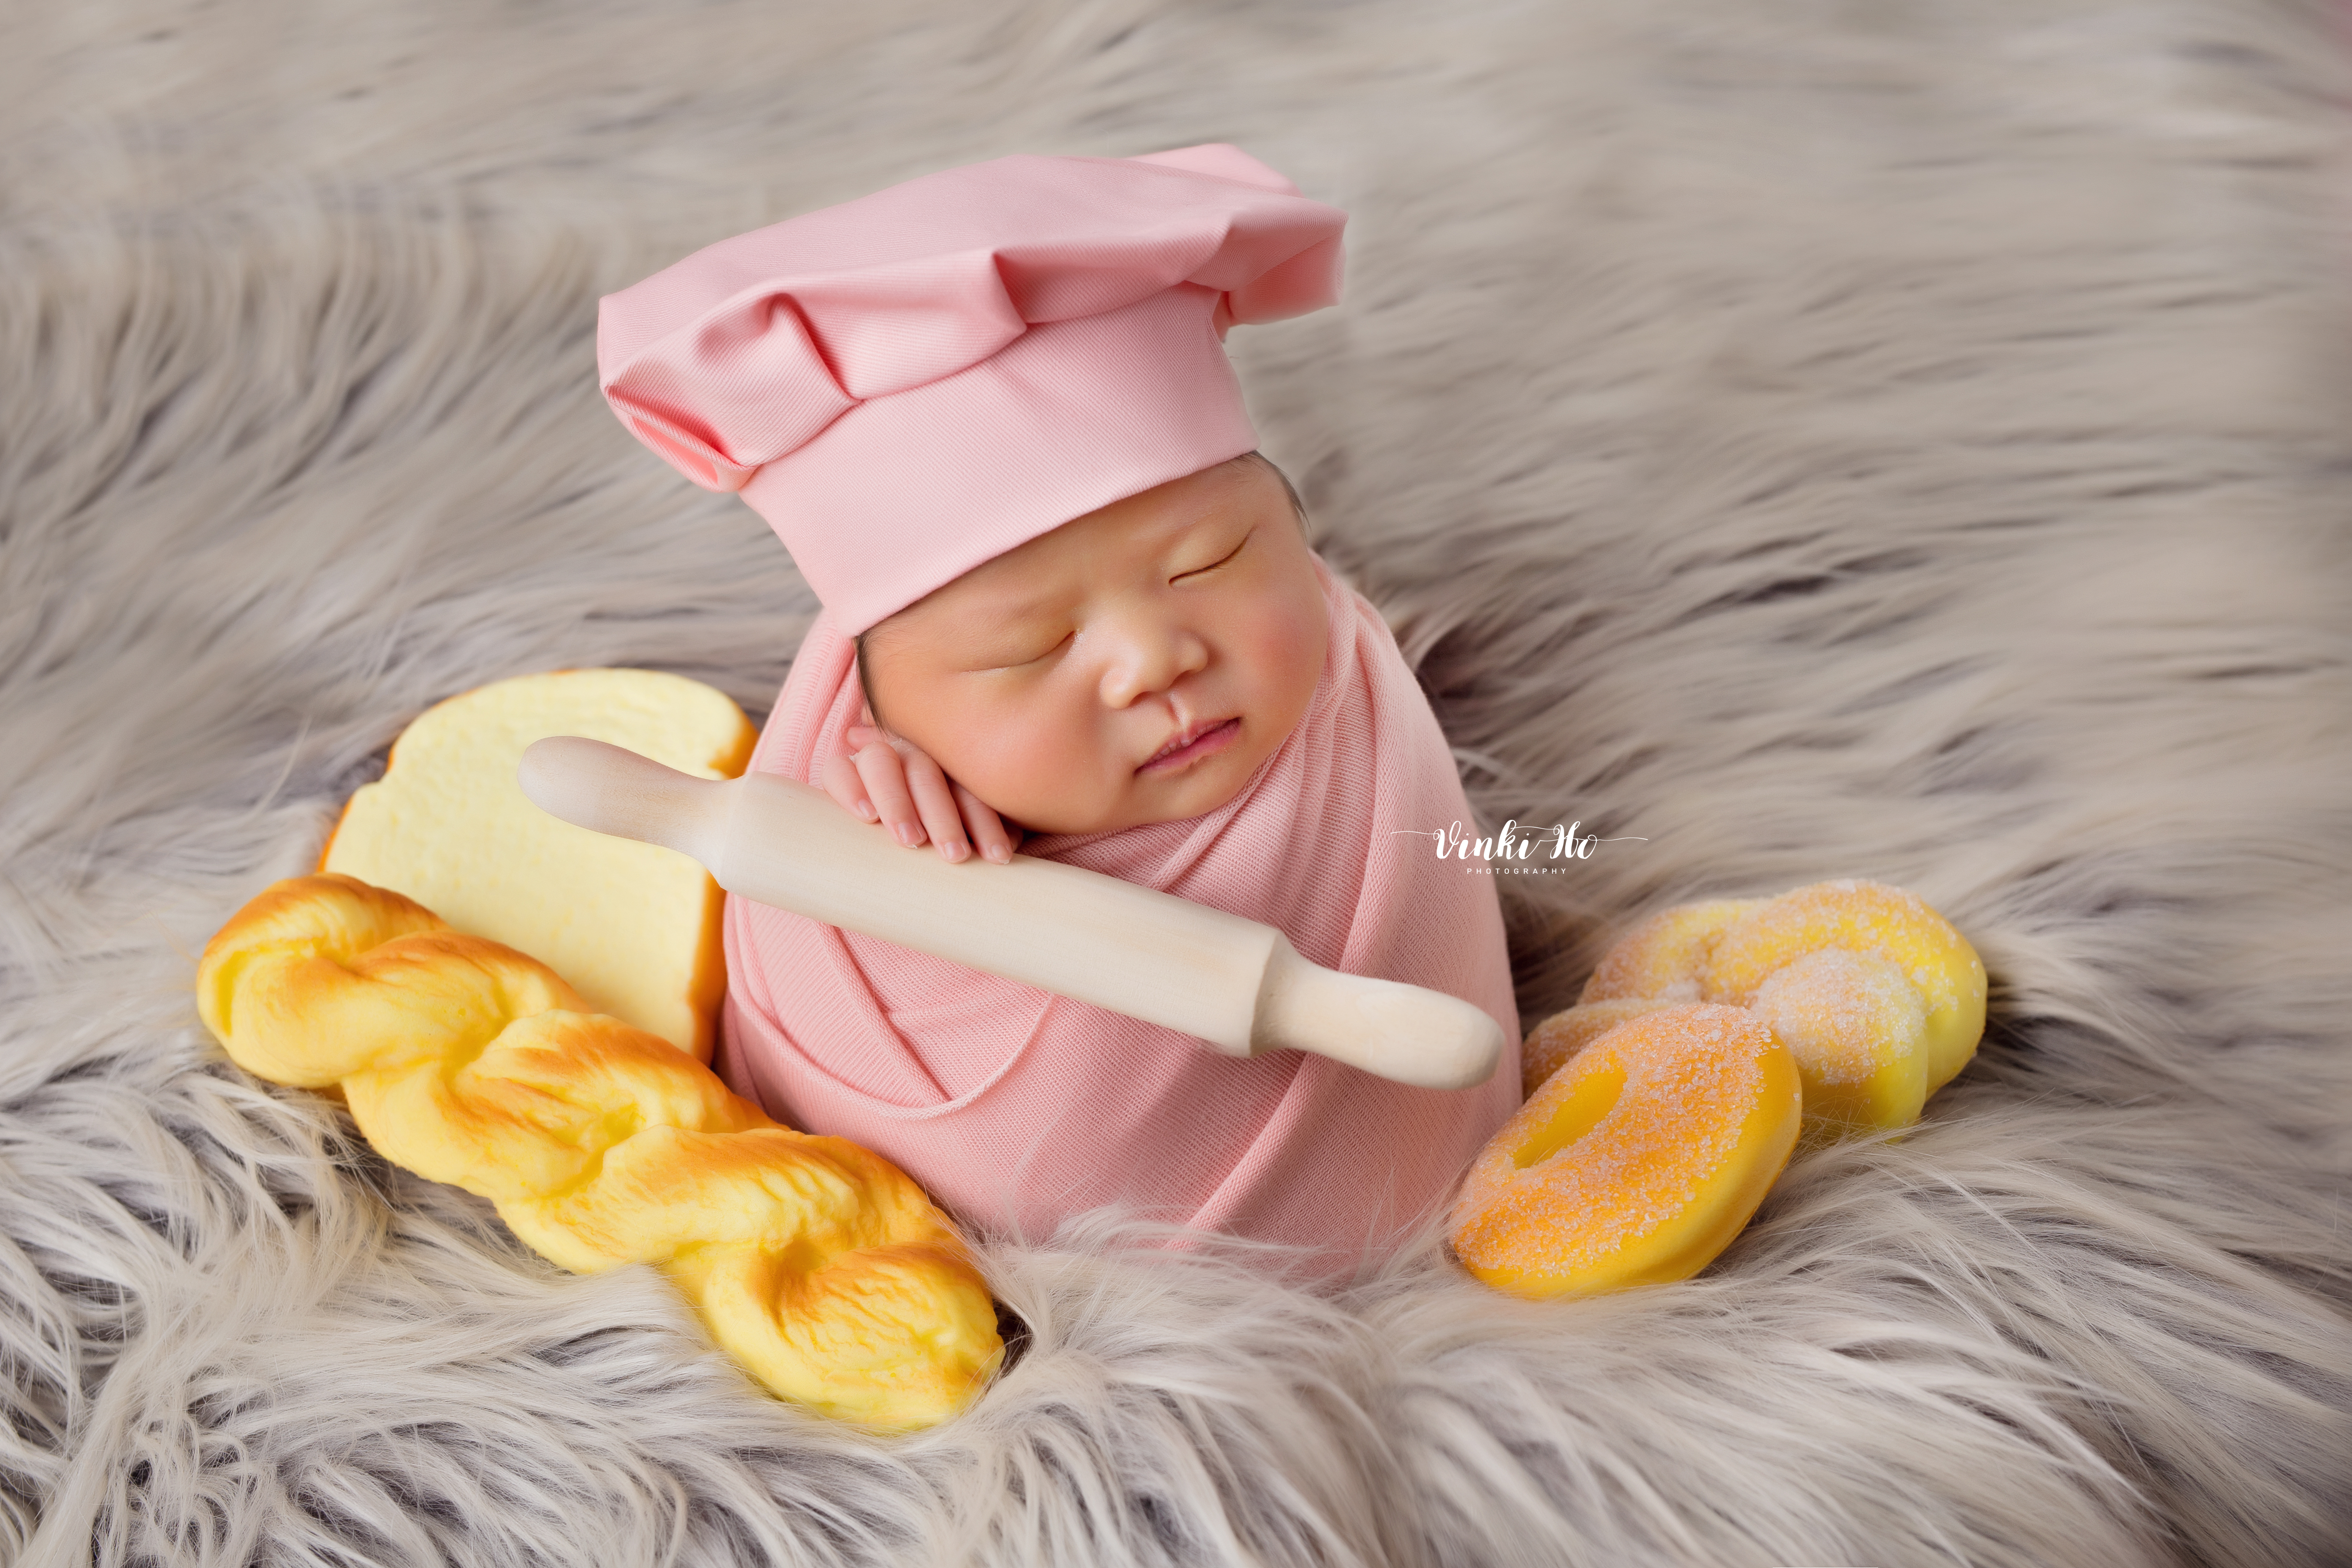 Baby Jovelle ~ 11days old